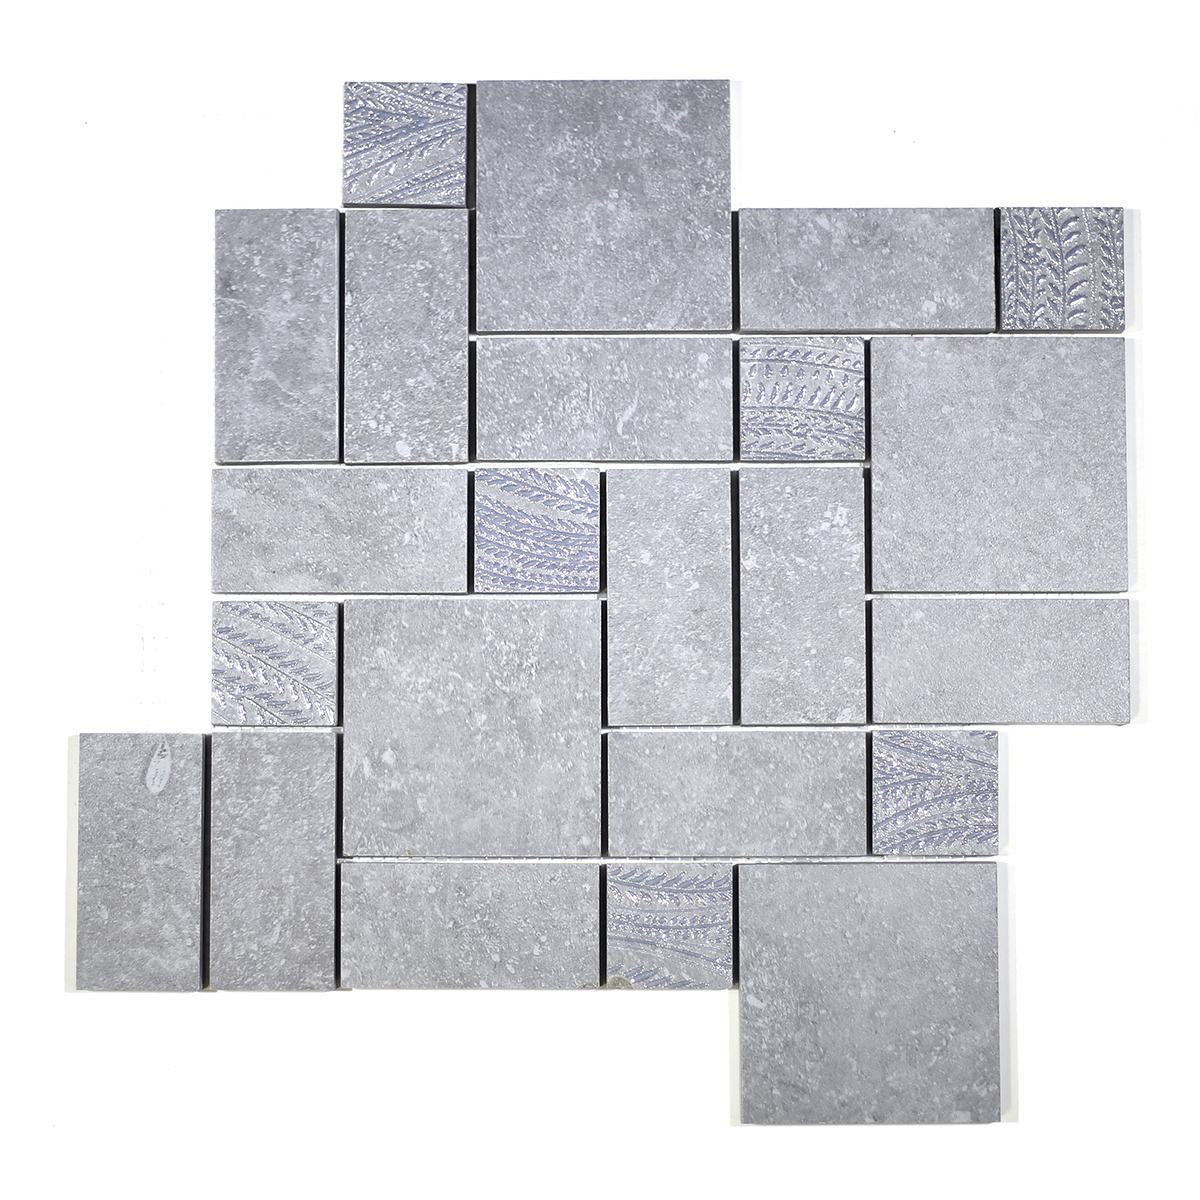 Bluebelle Compo Silver mosaic